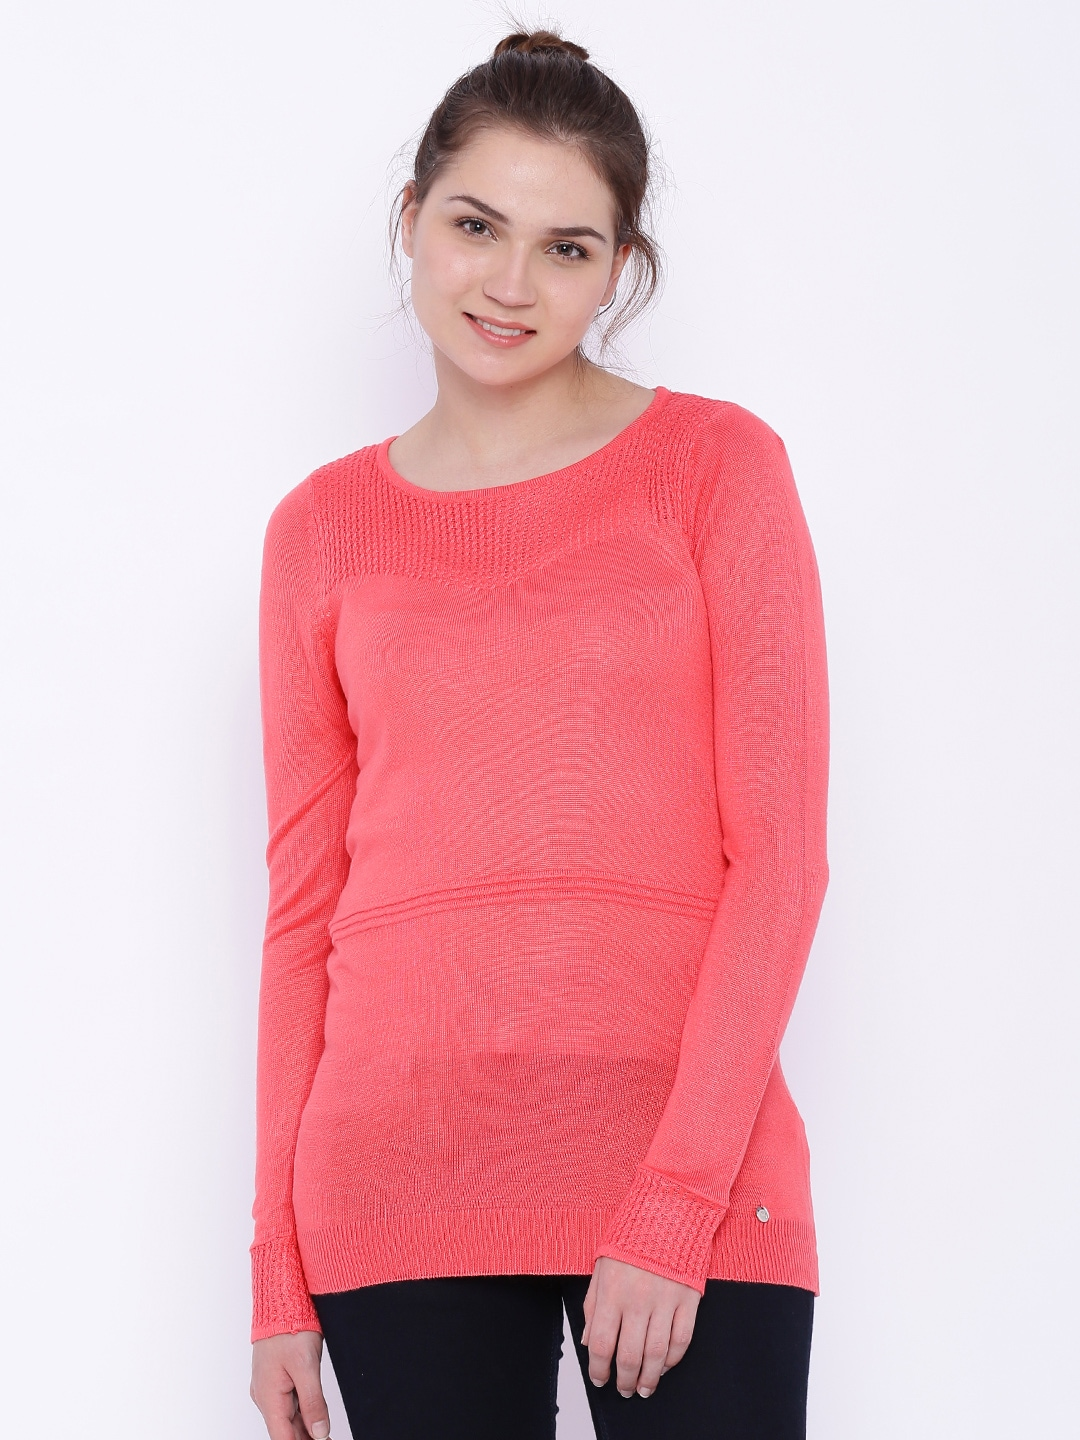 Deal Jeans Women Pink Top